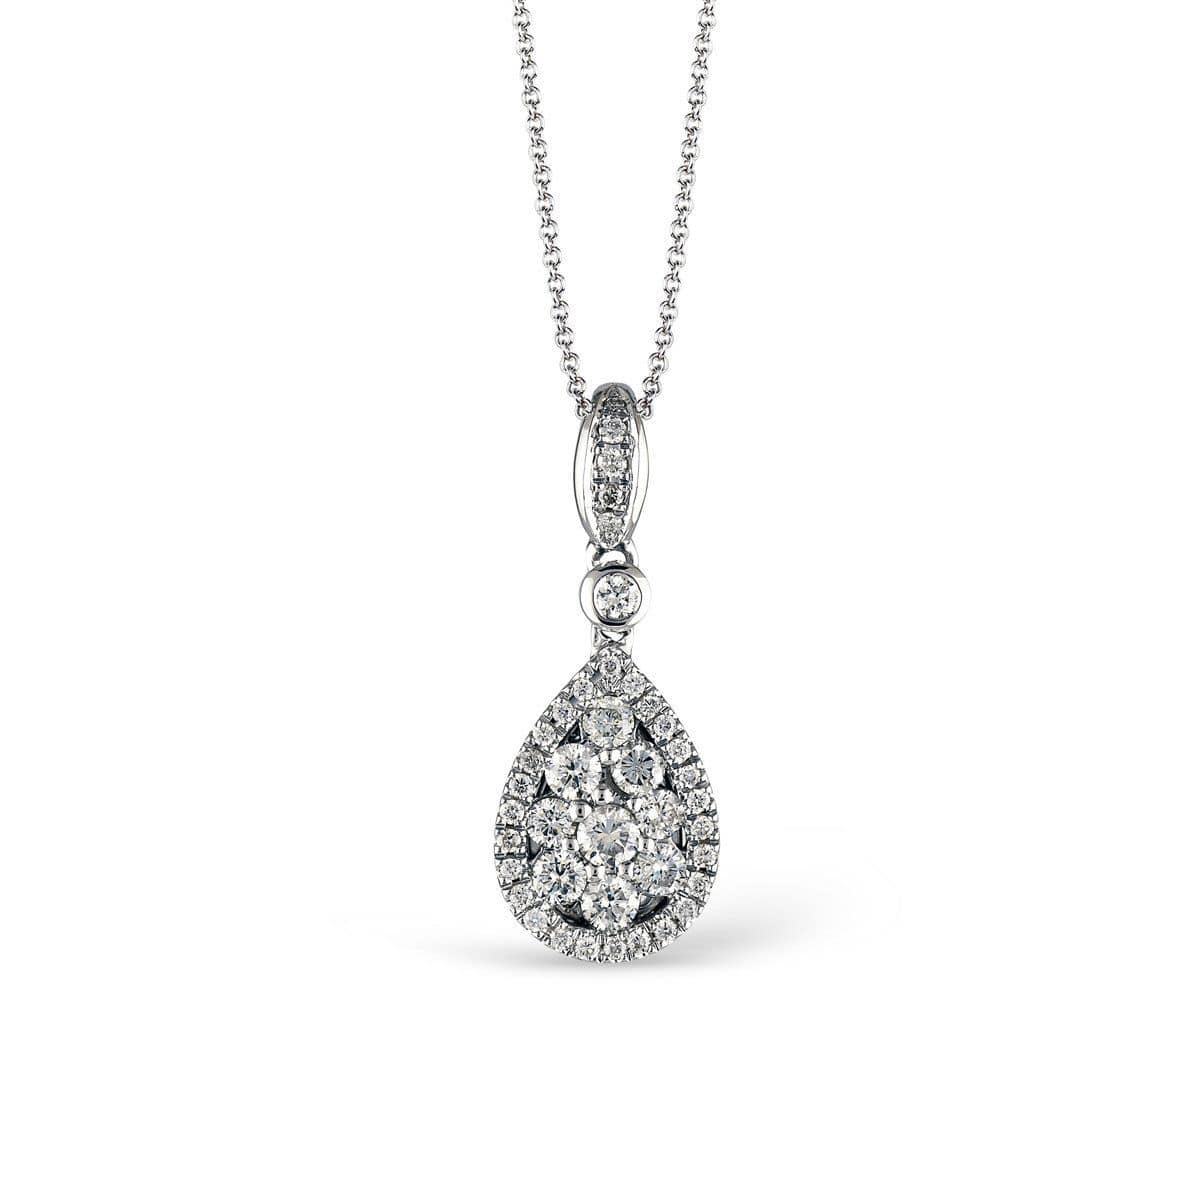 White Gold & Diamond Pendant - LP4247-W - Simon G.